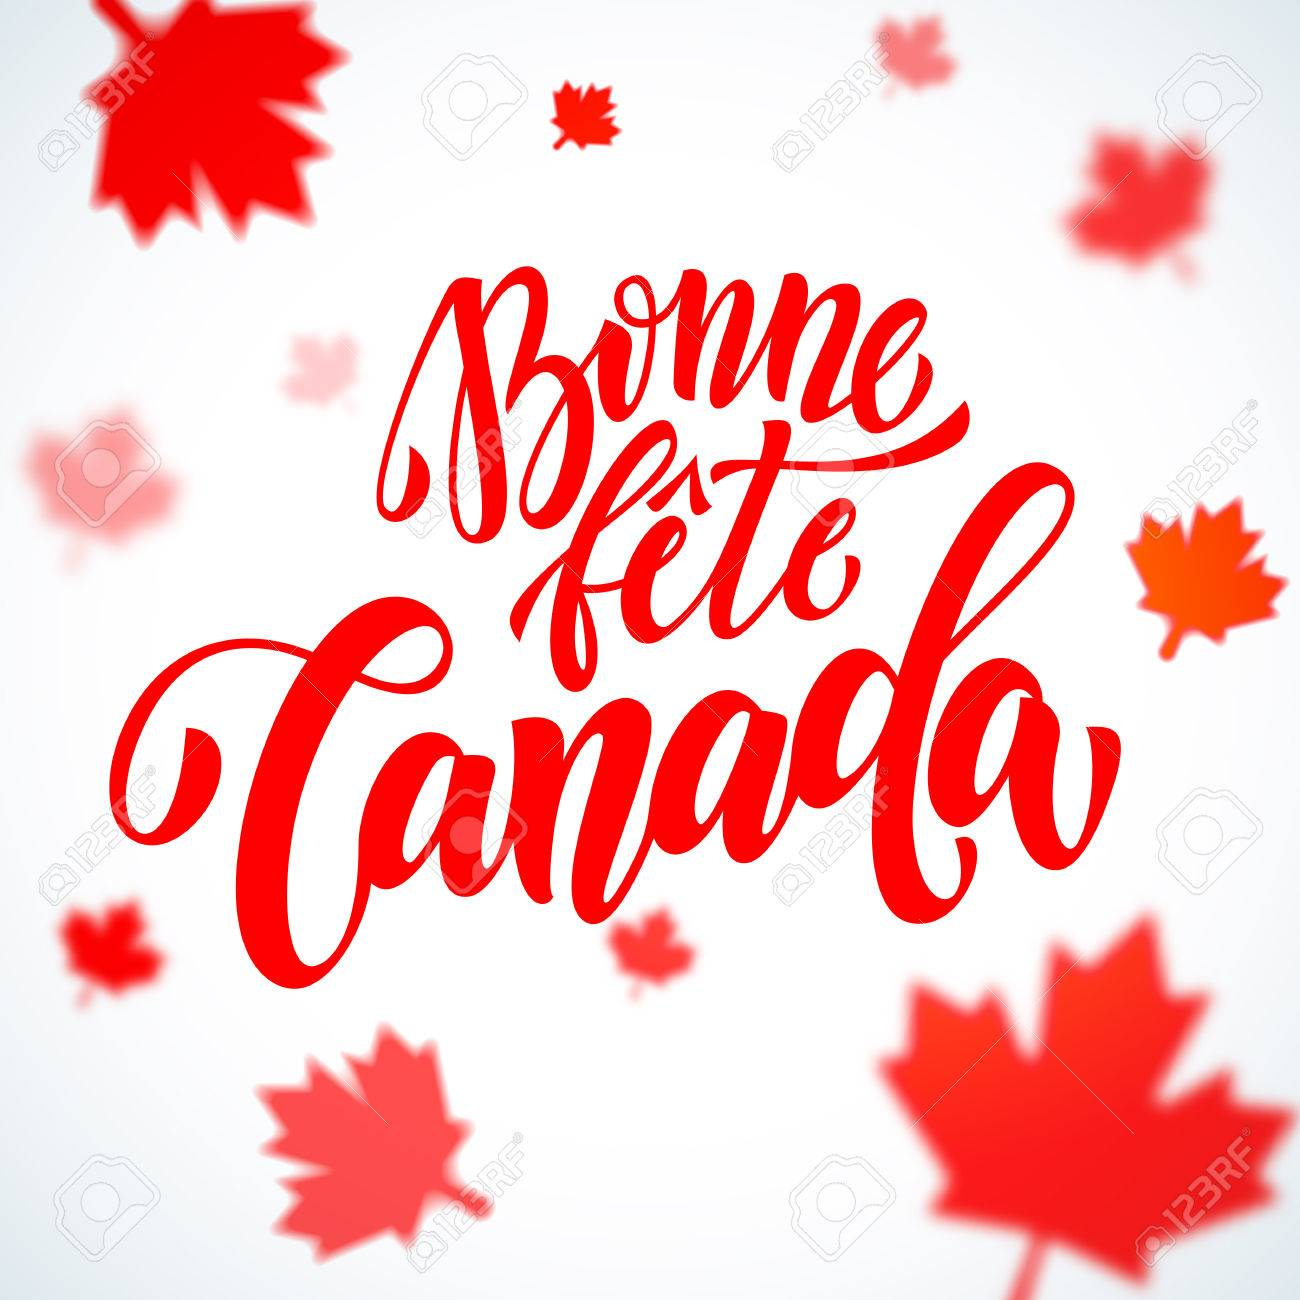 Clipart Bonne Fête bonne fete du canada in french. happy canada day calligraphy